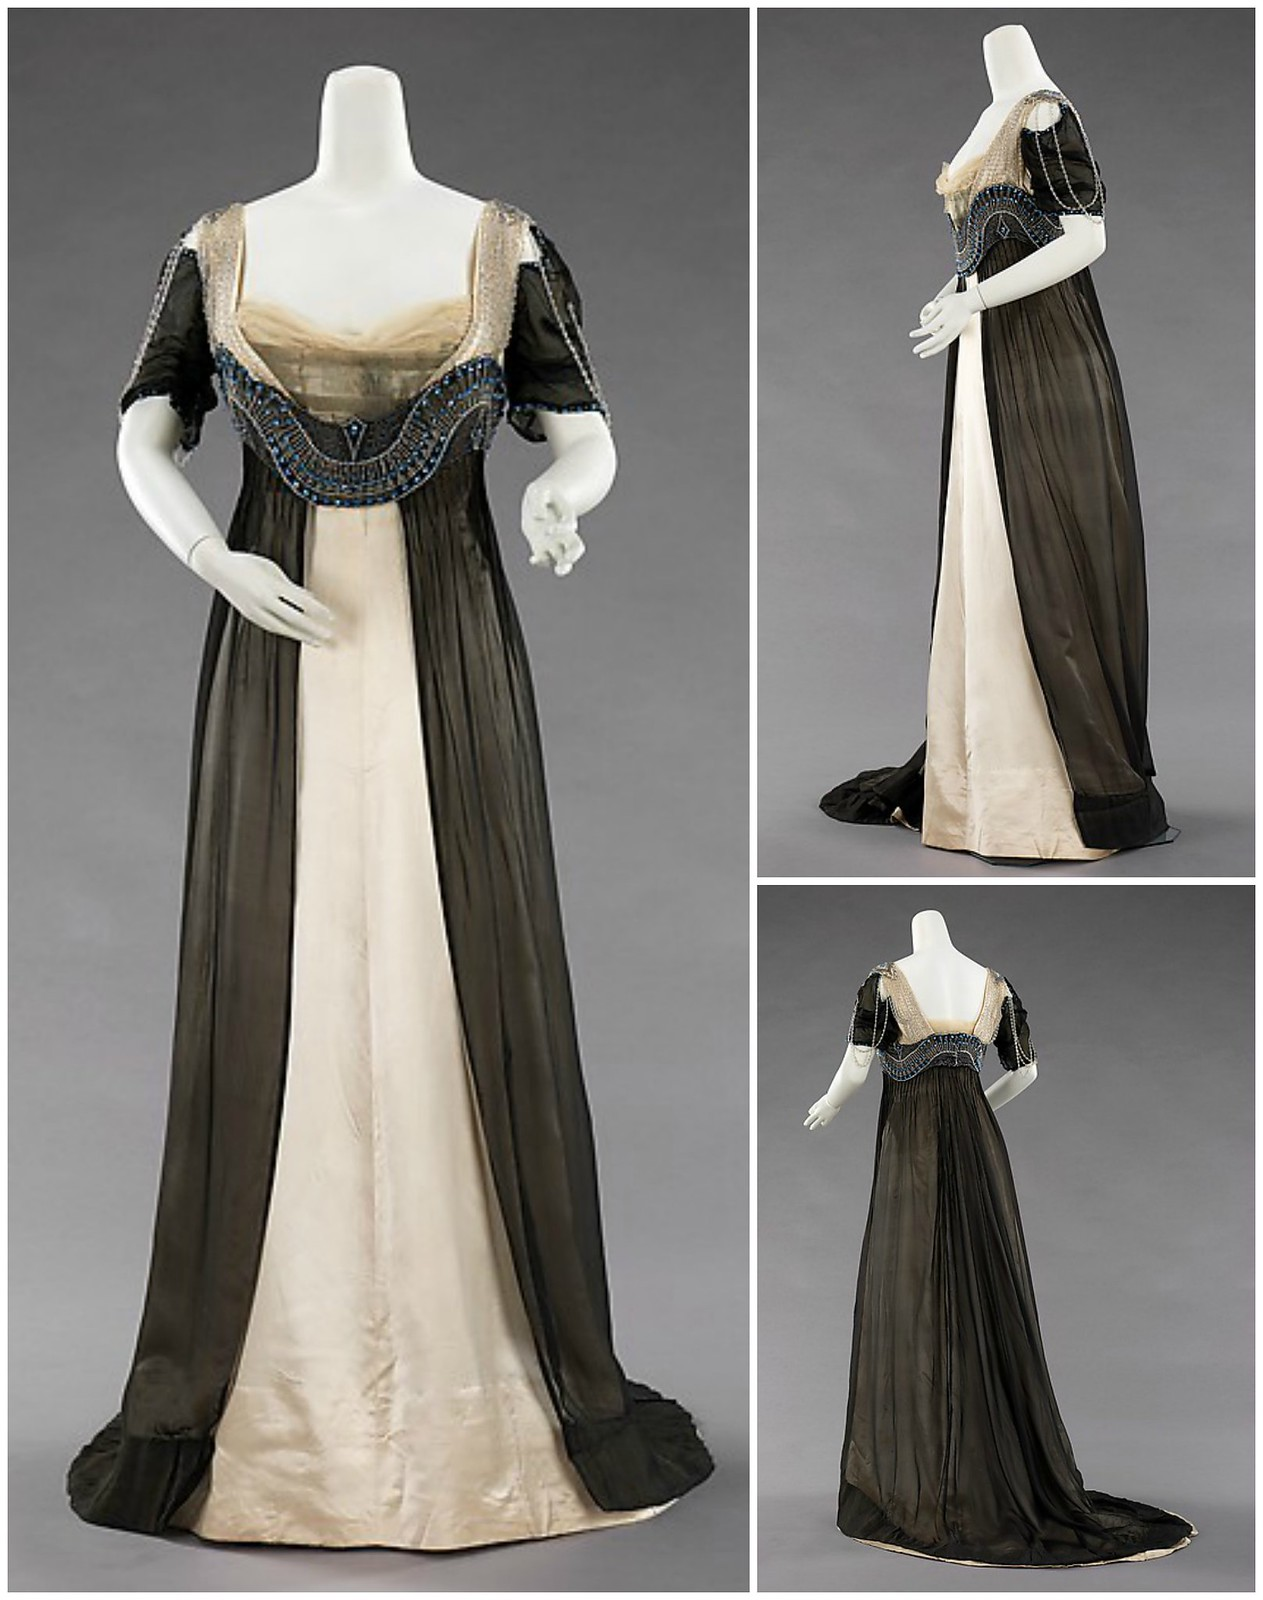 1911 Evening Dress. Silk, metal, glass. metmuseum